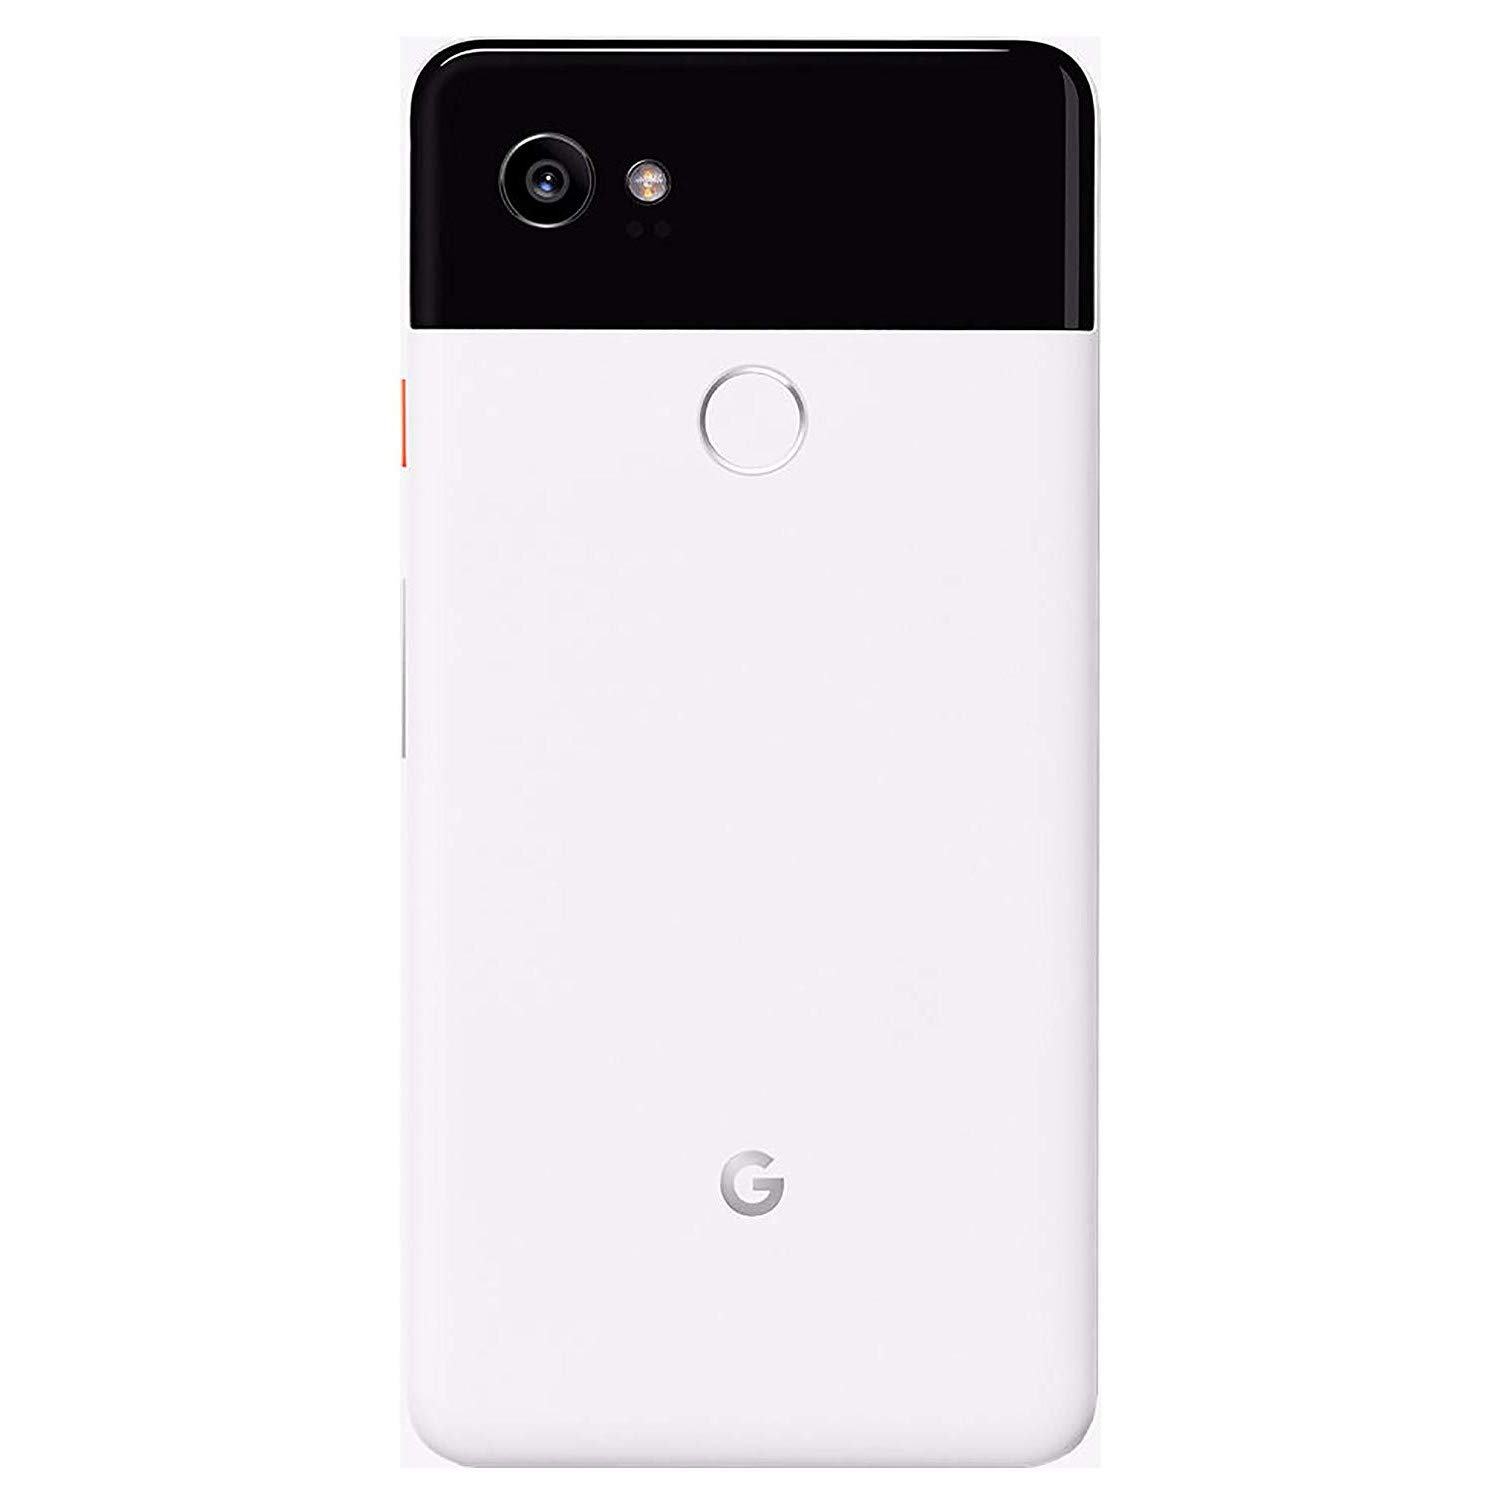 Google Pixel 2 XL Blanco/Negro 64 GB UK G011C: Amazon.es: Electrónica